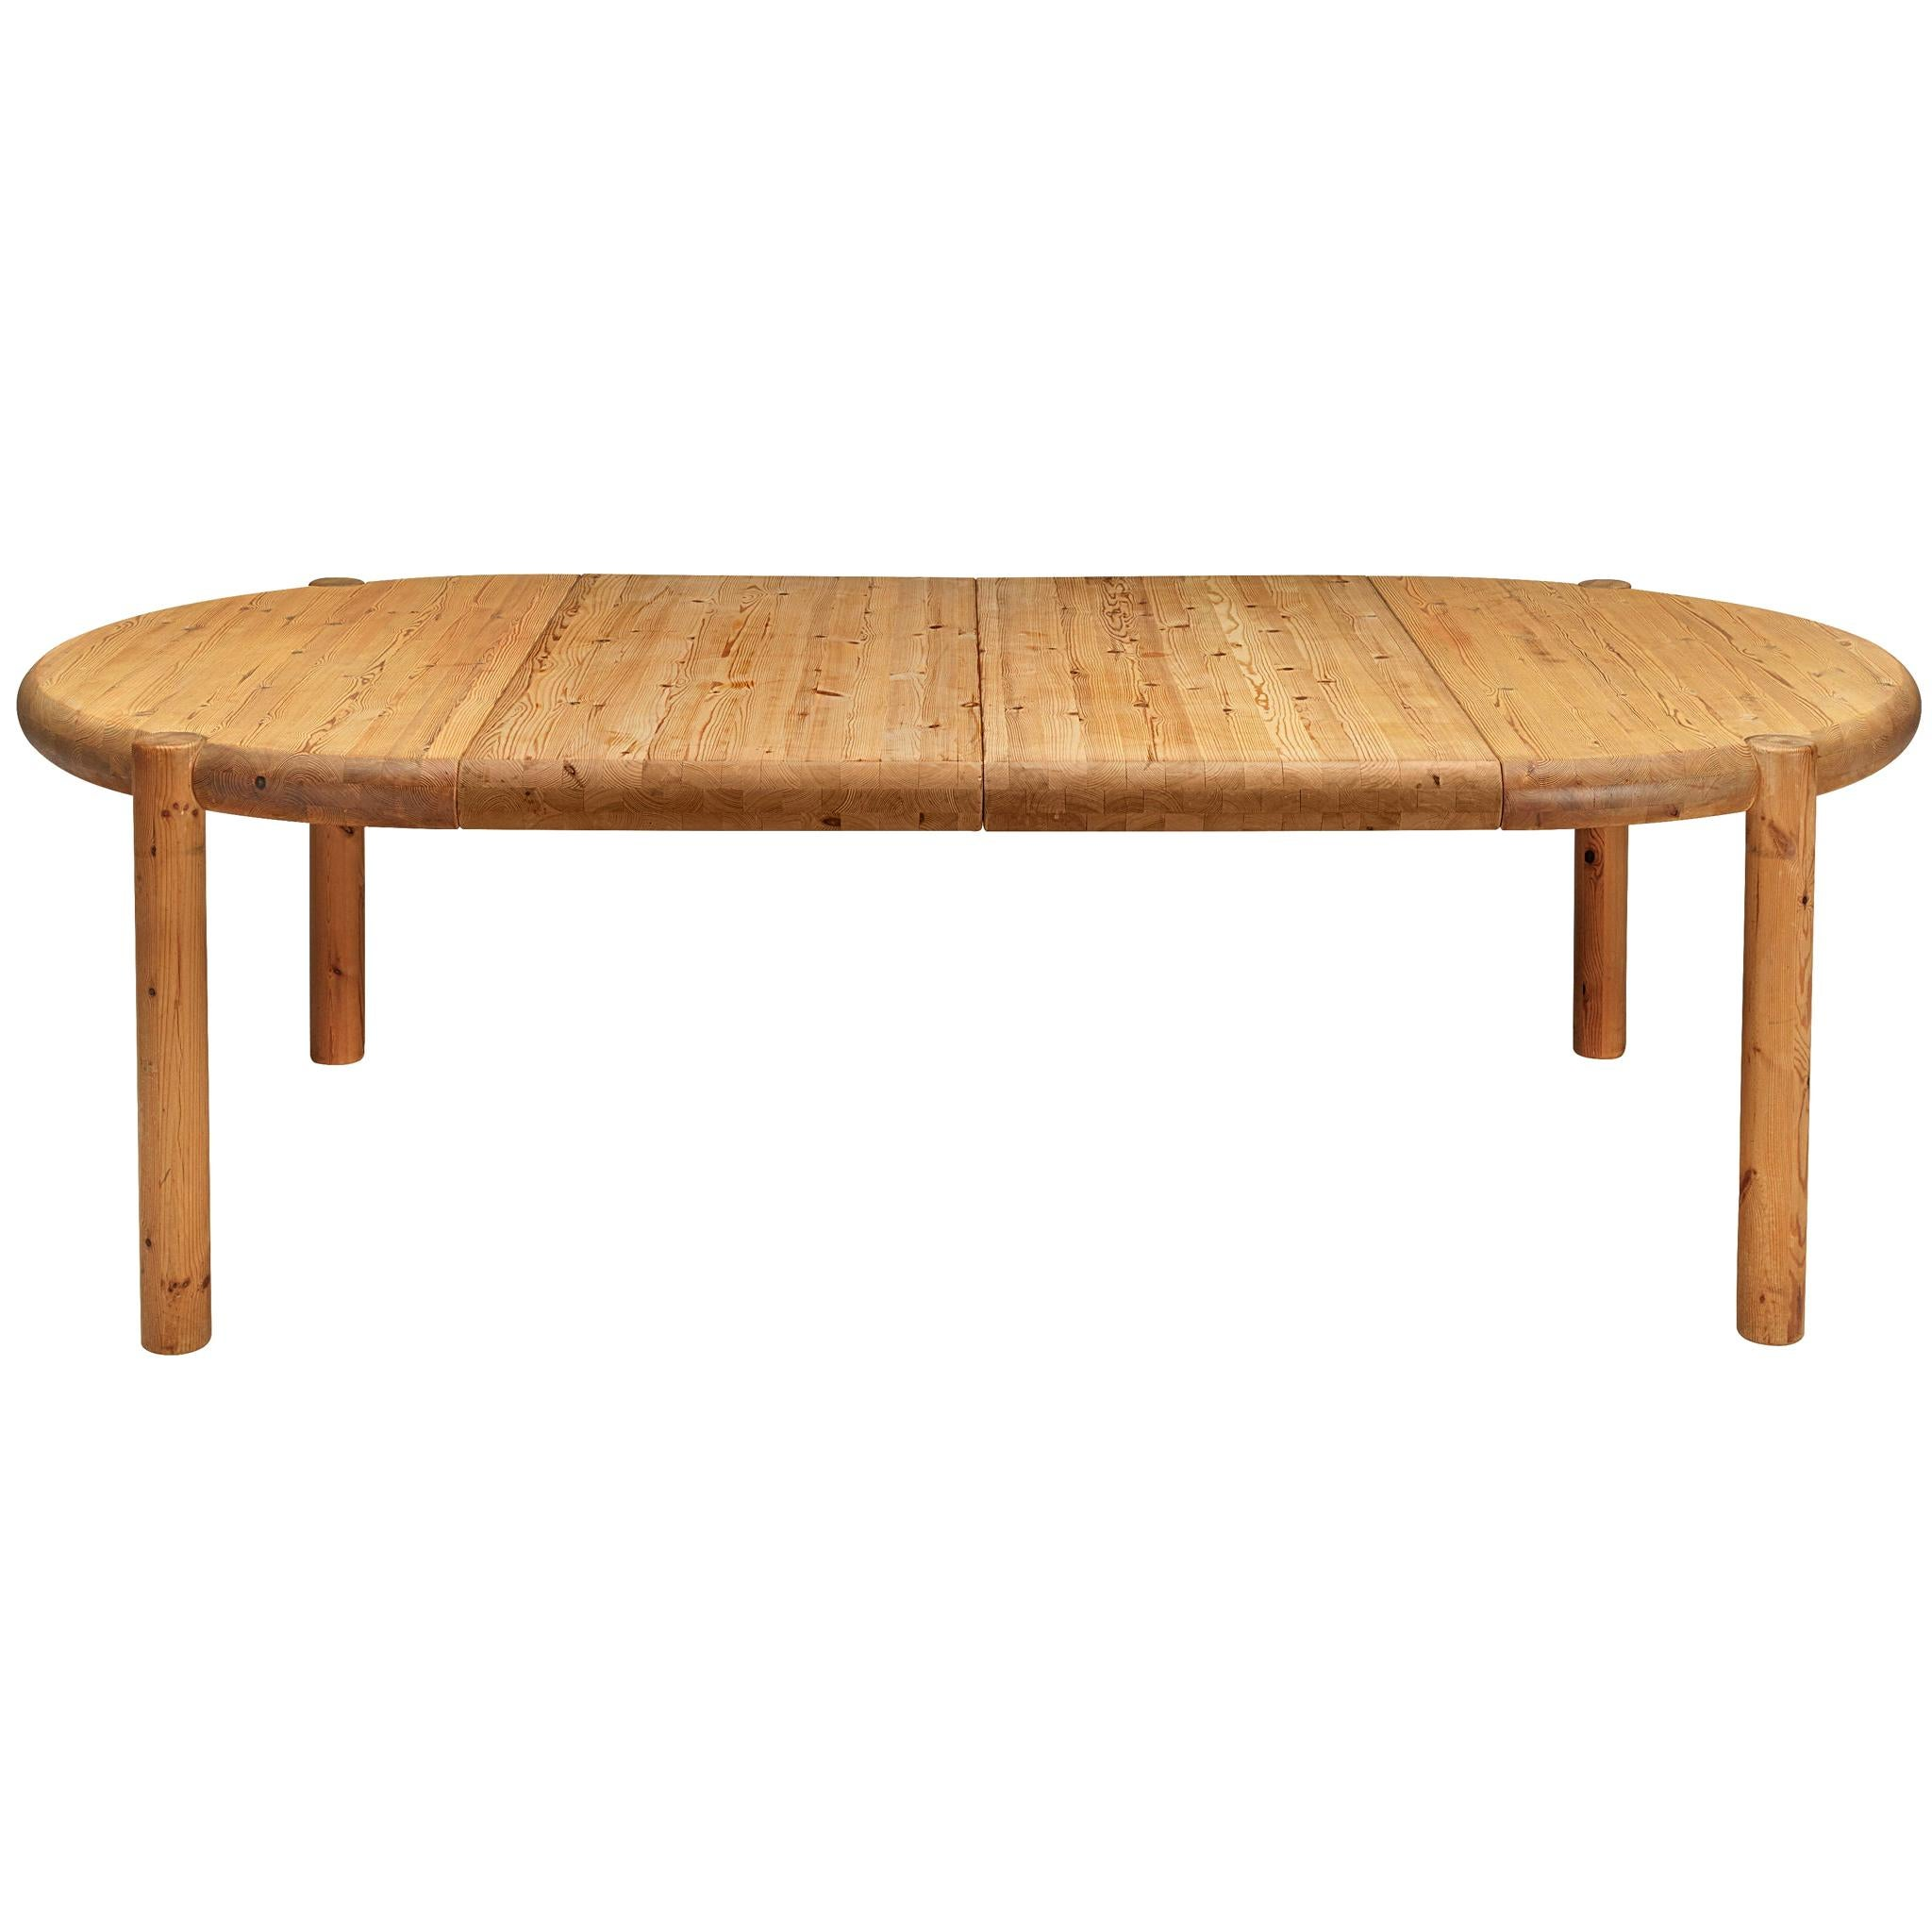 Rainer Daumiller Extendable Dining Table in Pine